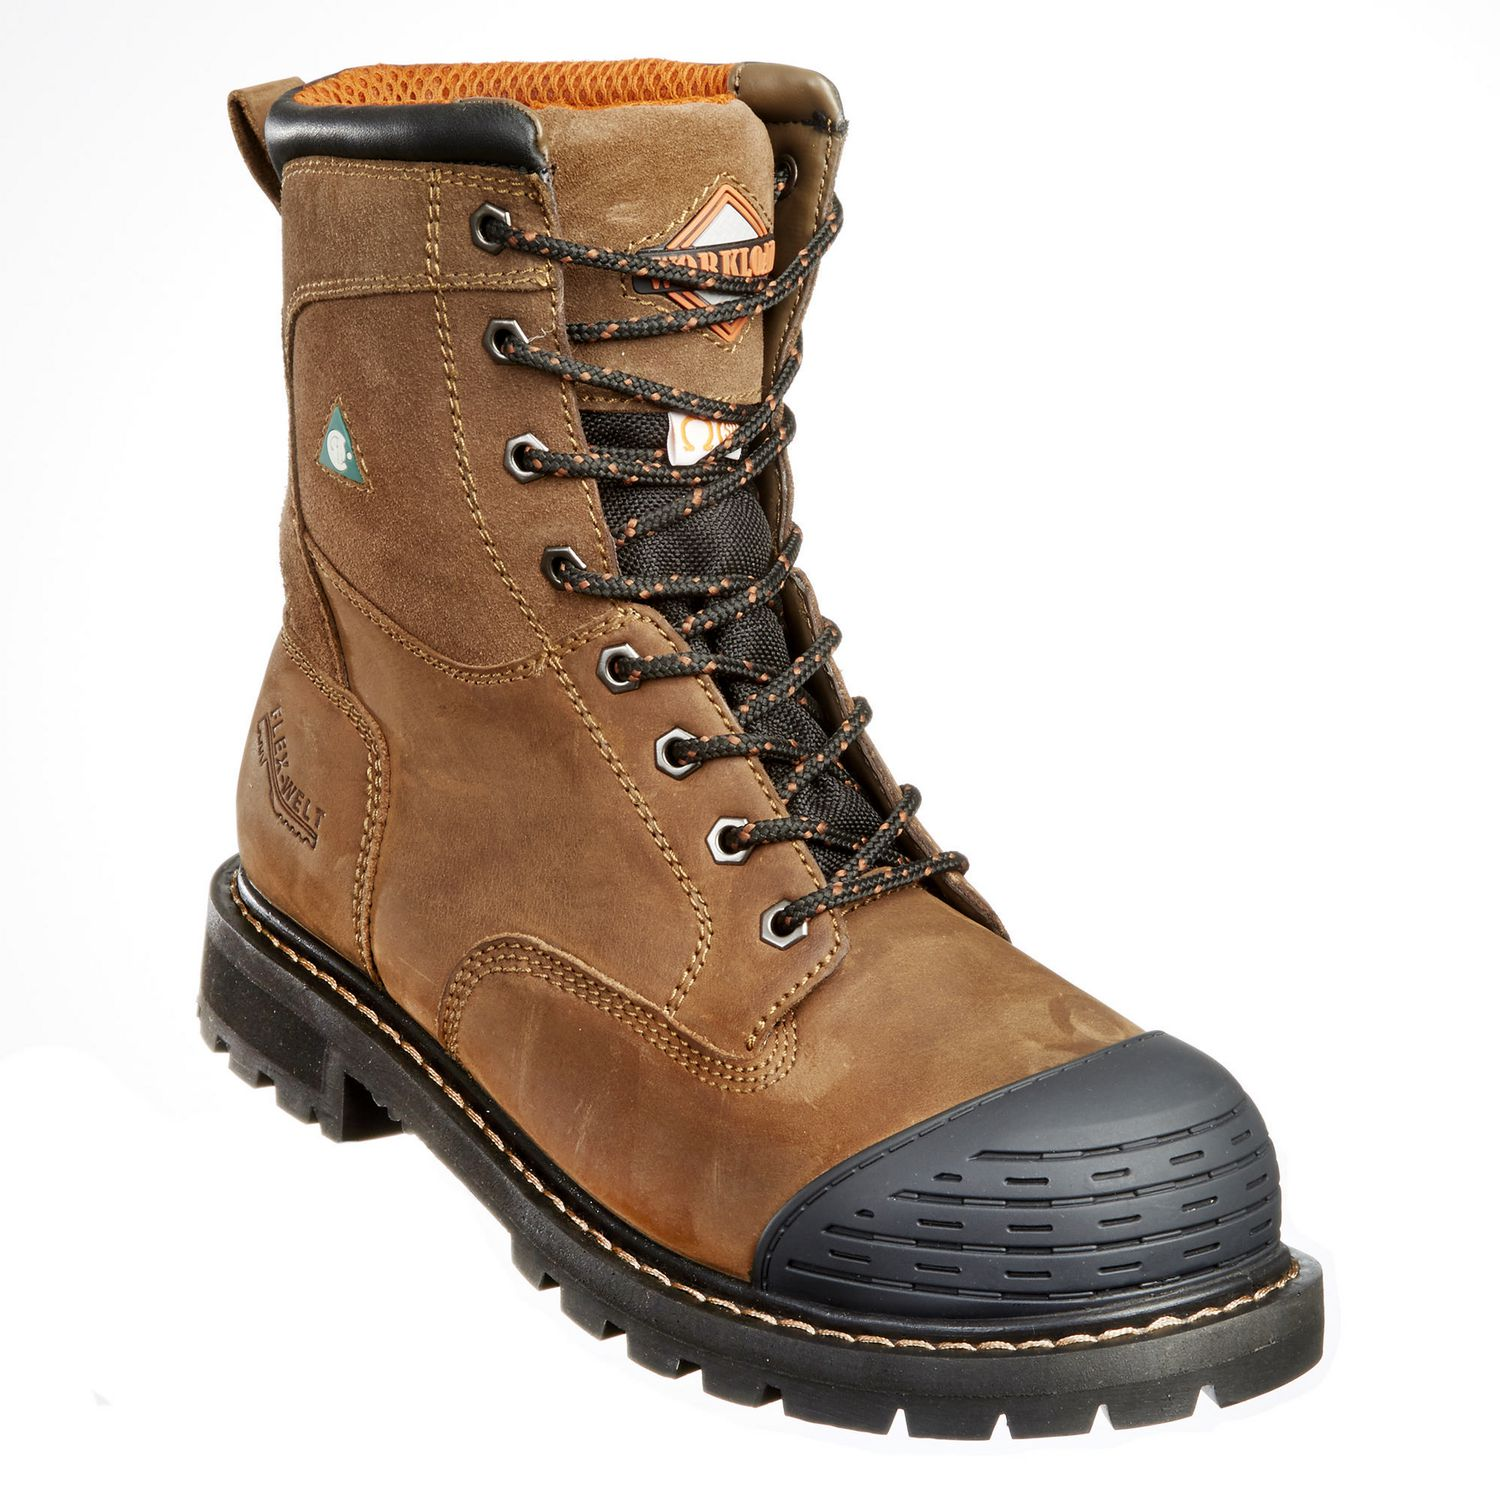 Men's Work Boots & Safety Shoes | Walmart Canada